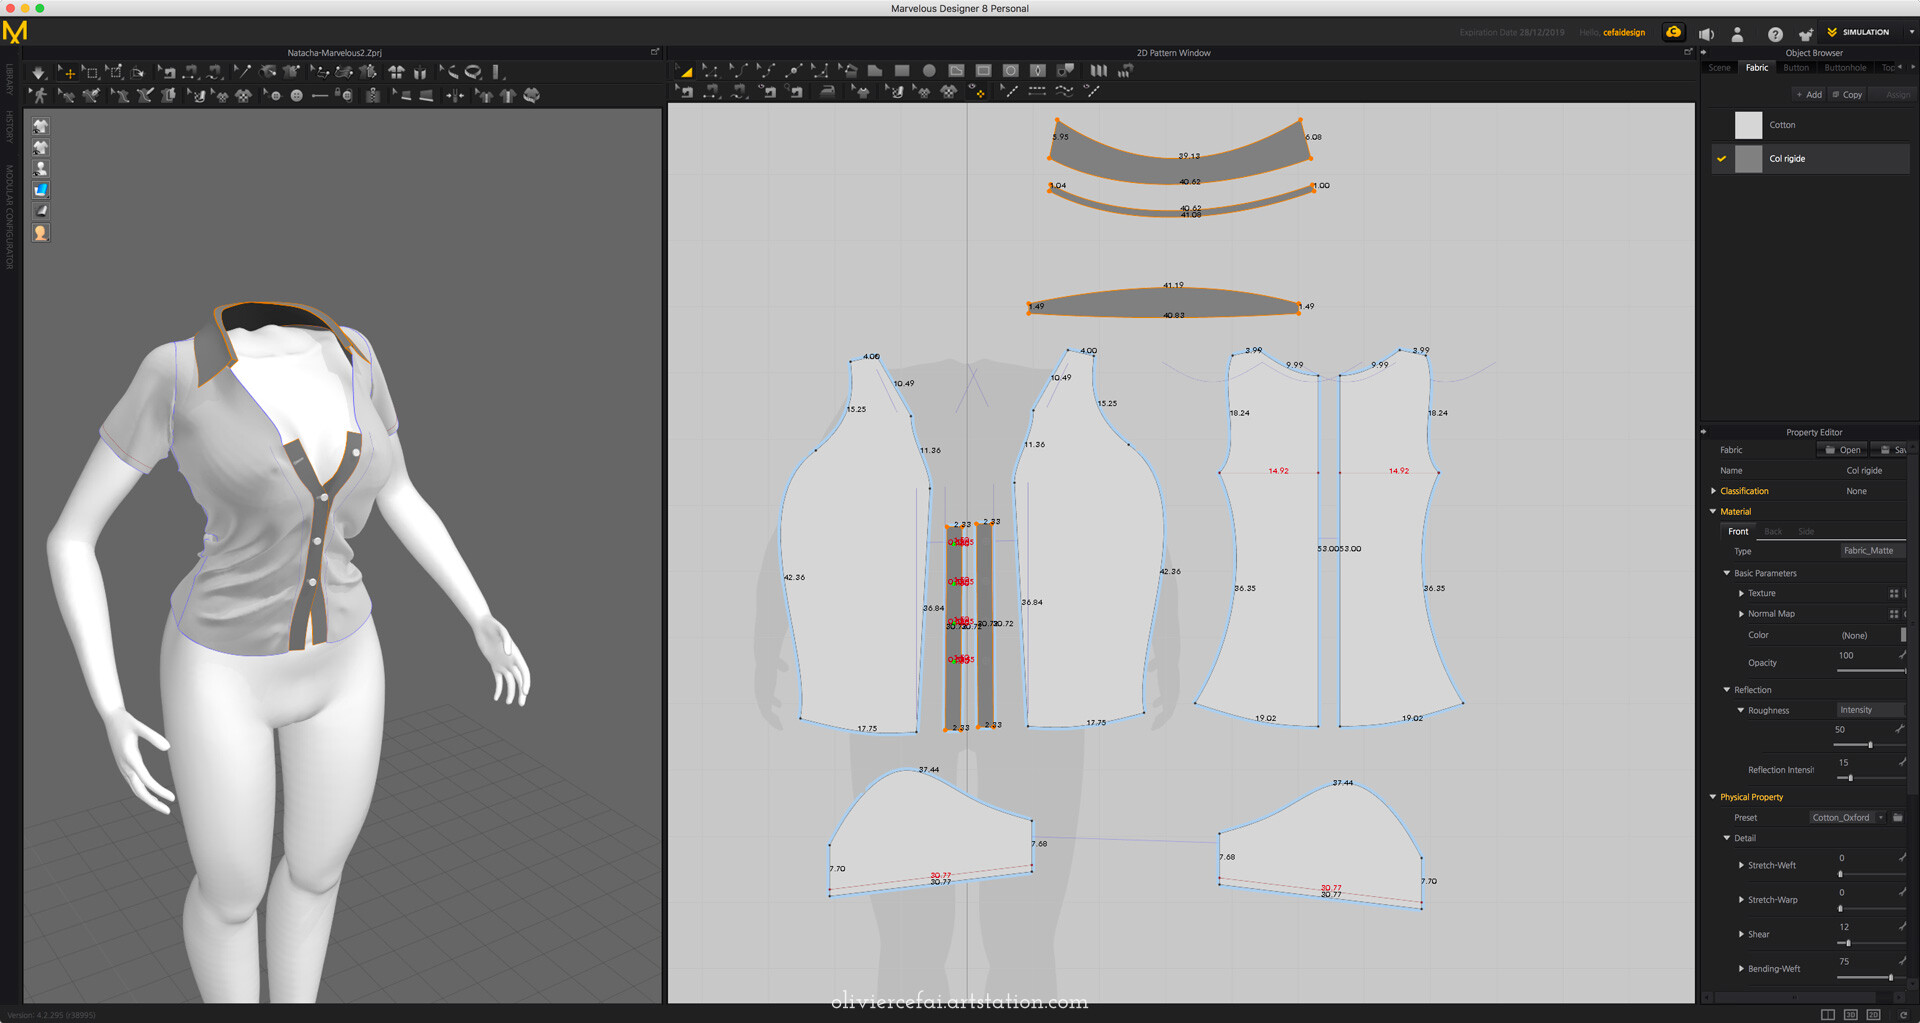 Design of the shirt in Marvelous designer